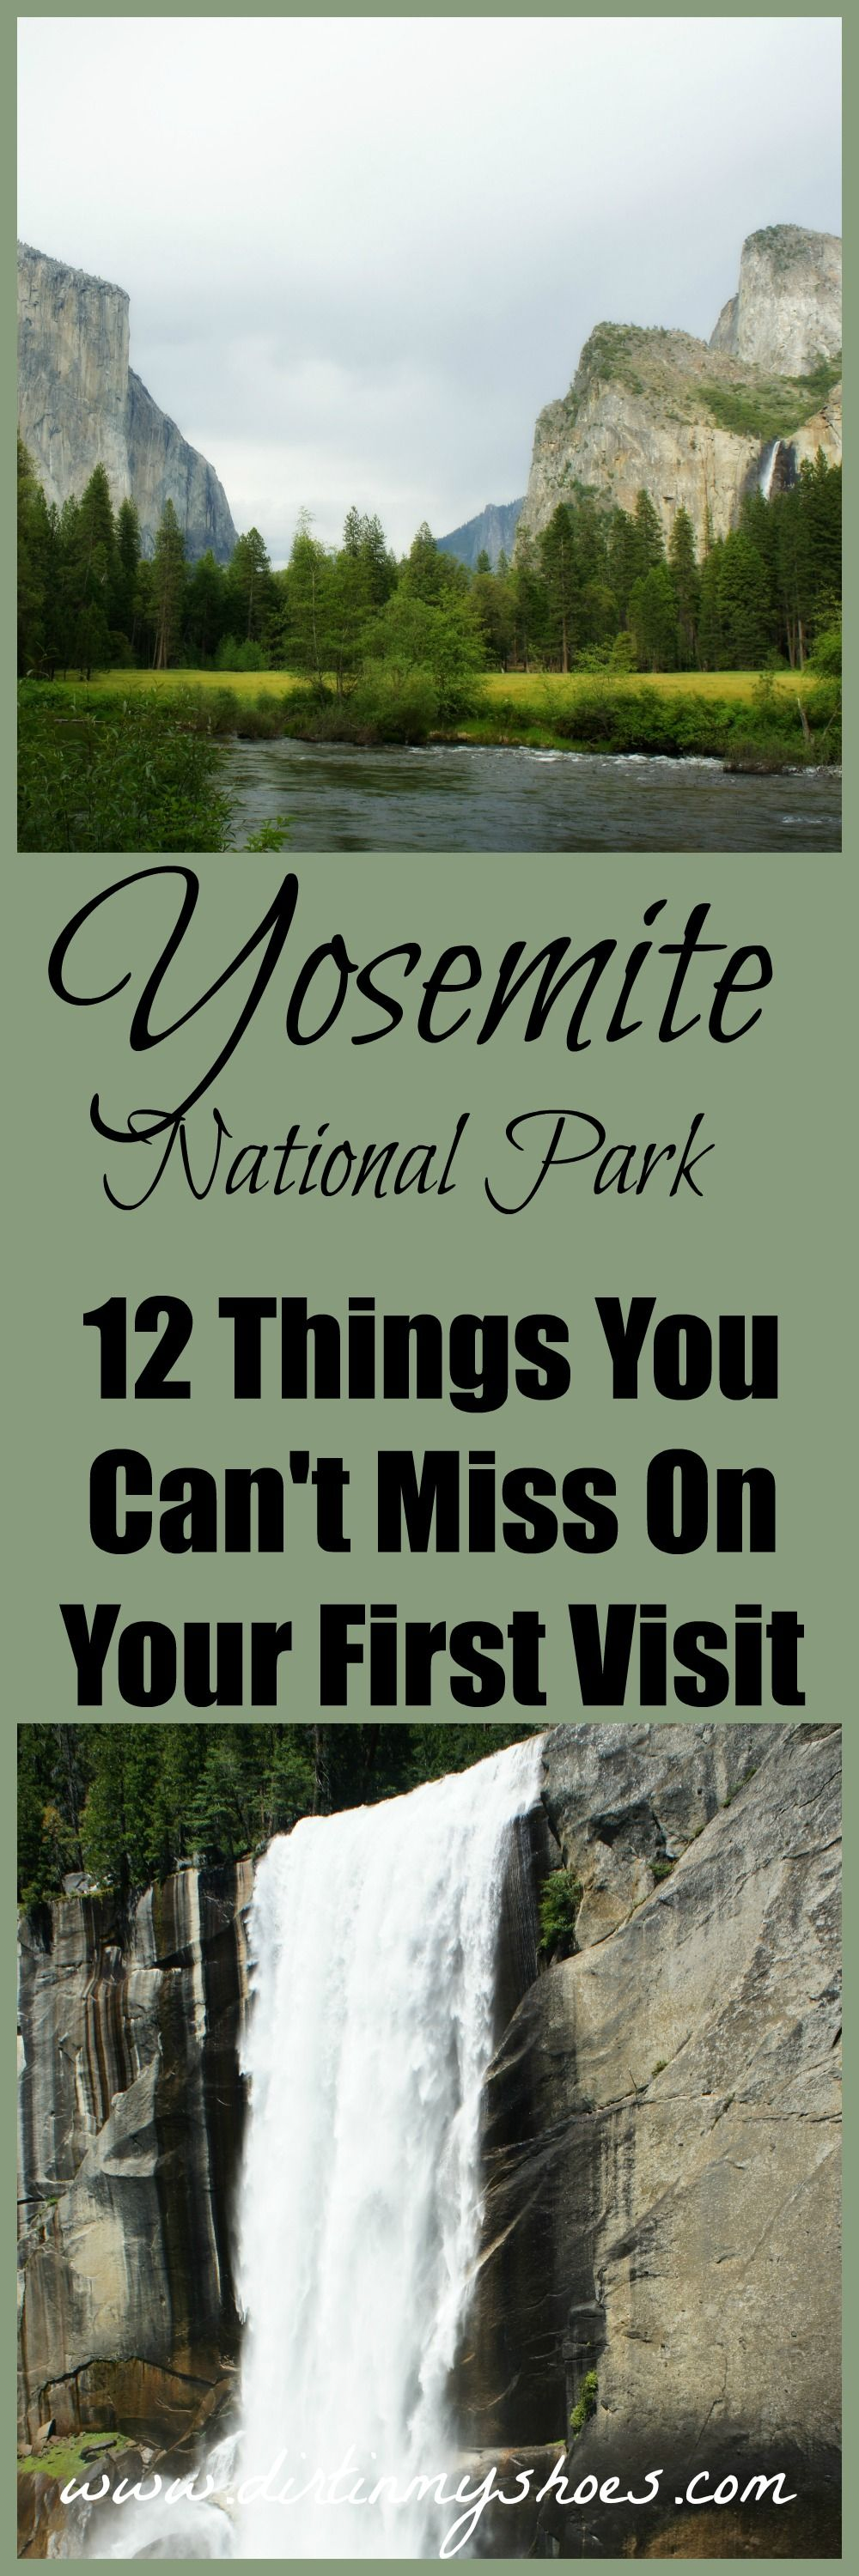 12 things you absolutely canu0027t miss in